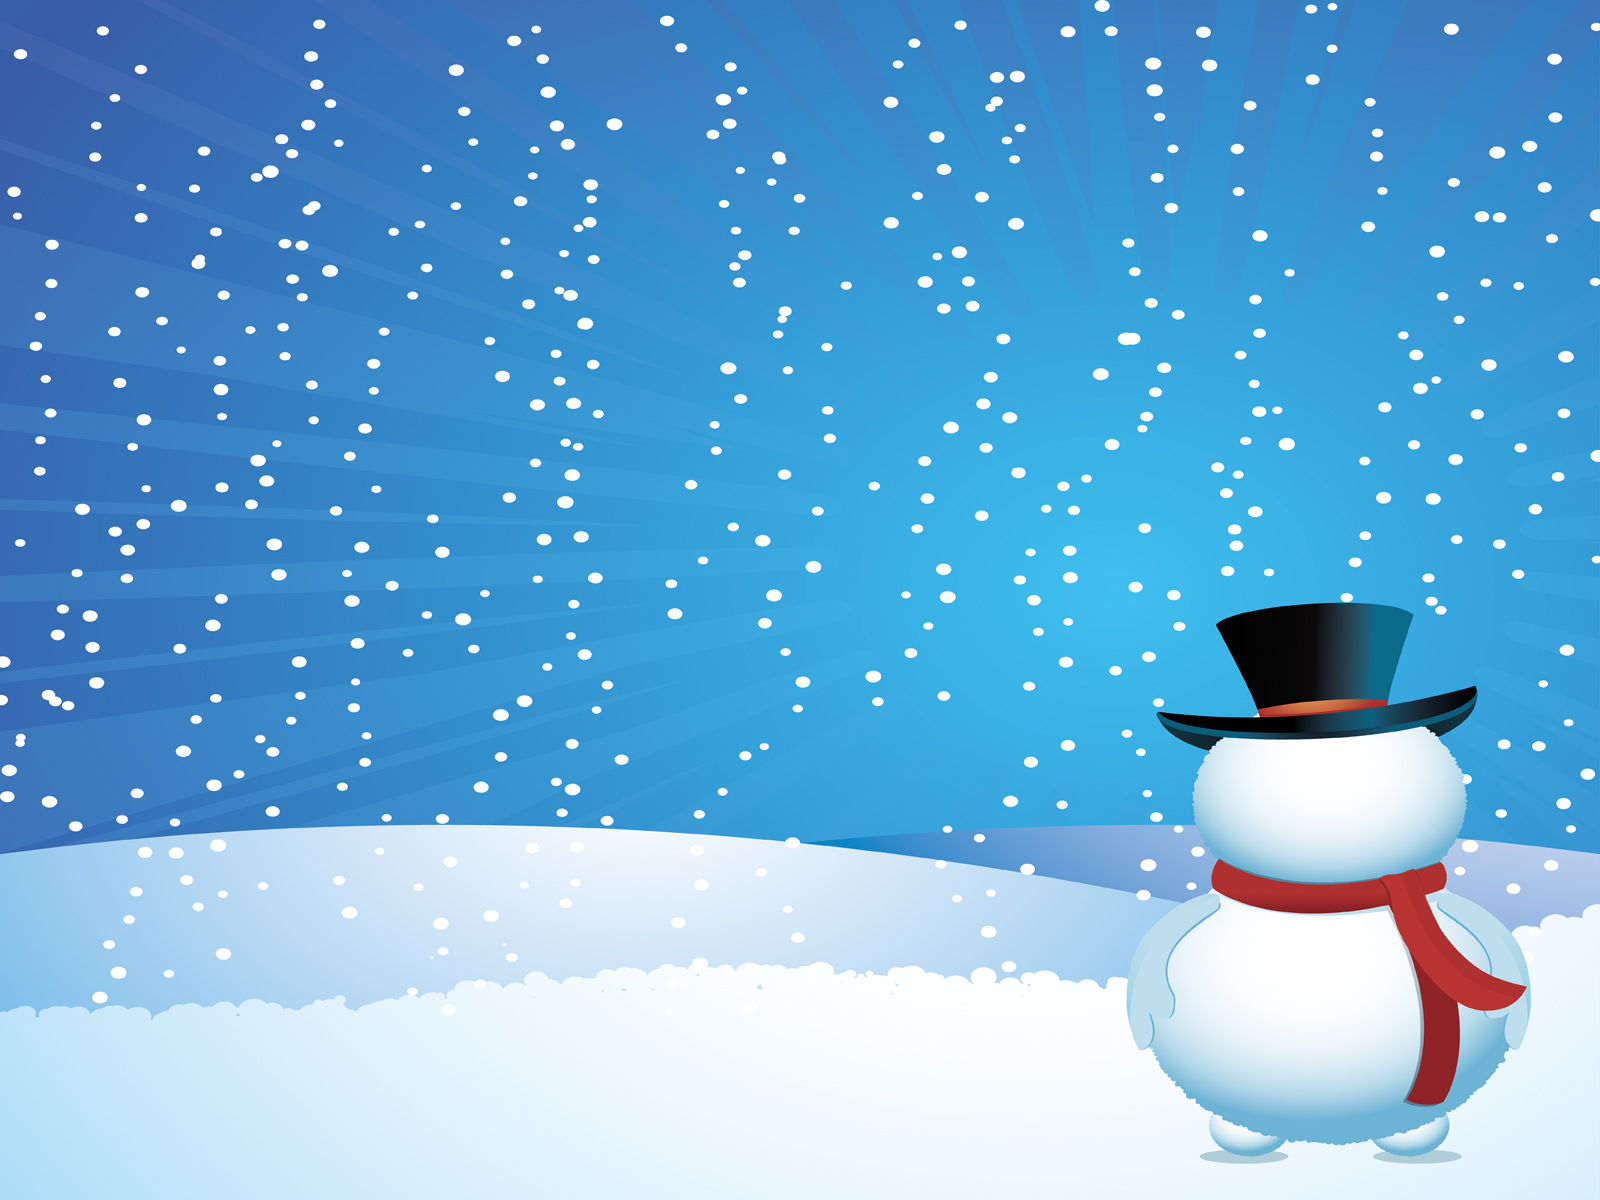 snow man on christmas backgrounds christmas design